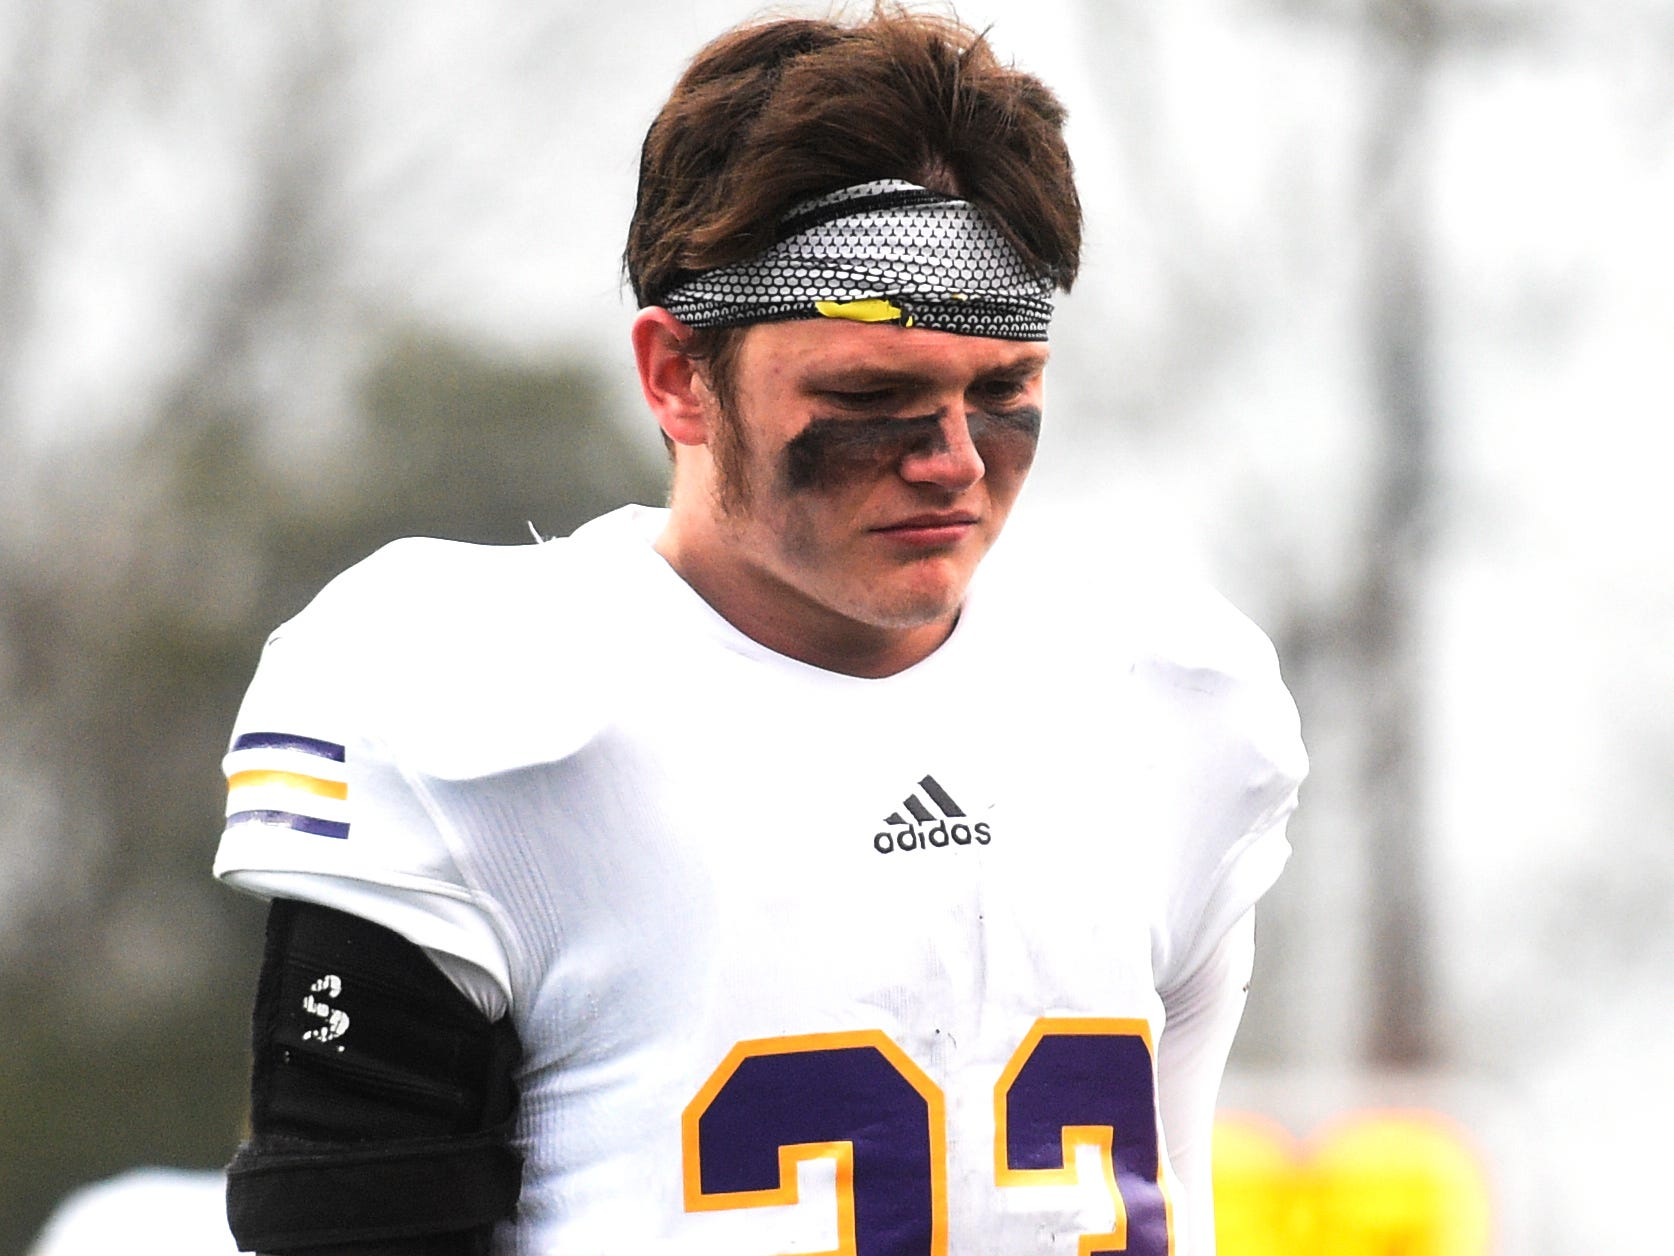 Trousdale's Houston Stafford (23) walks off the field after the team's 17-9 loss to Peabody in the Class 2A BlueCross Bowl state championship at Tennessee Tech's Tucker Stadium in Cookeville, Tenn., on Thursday, Nov. 29, 2018.